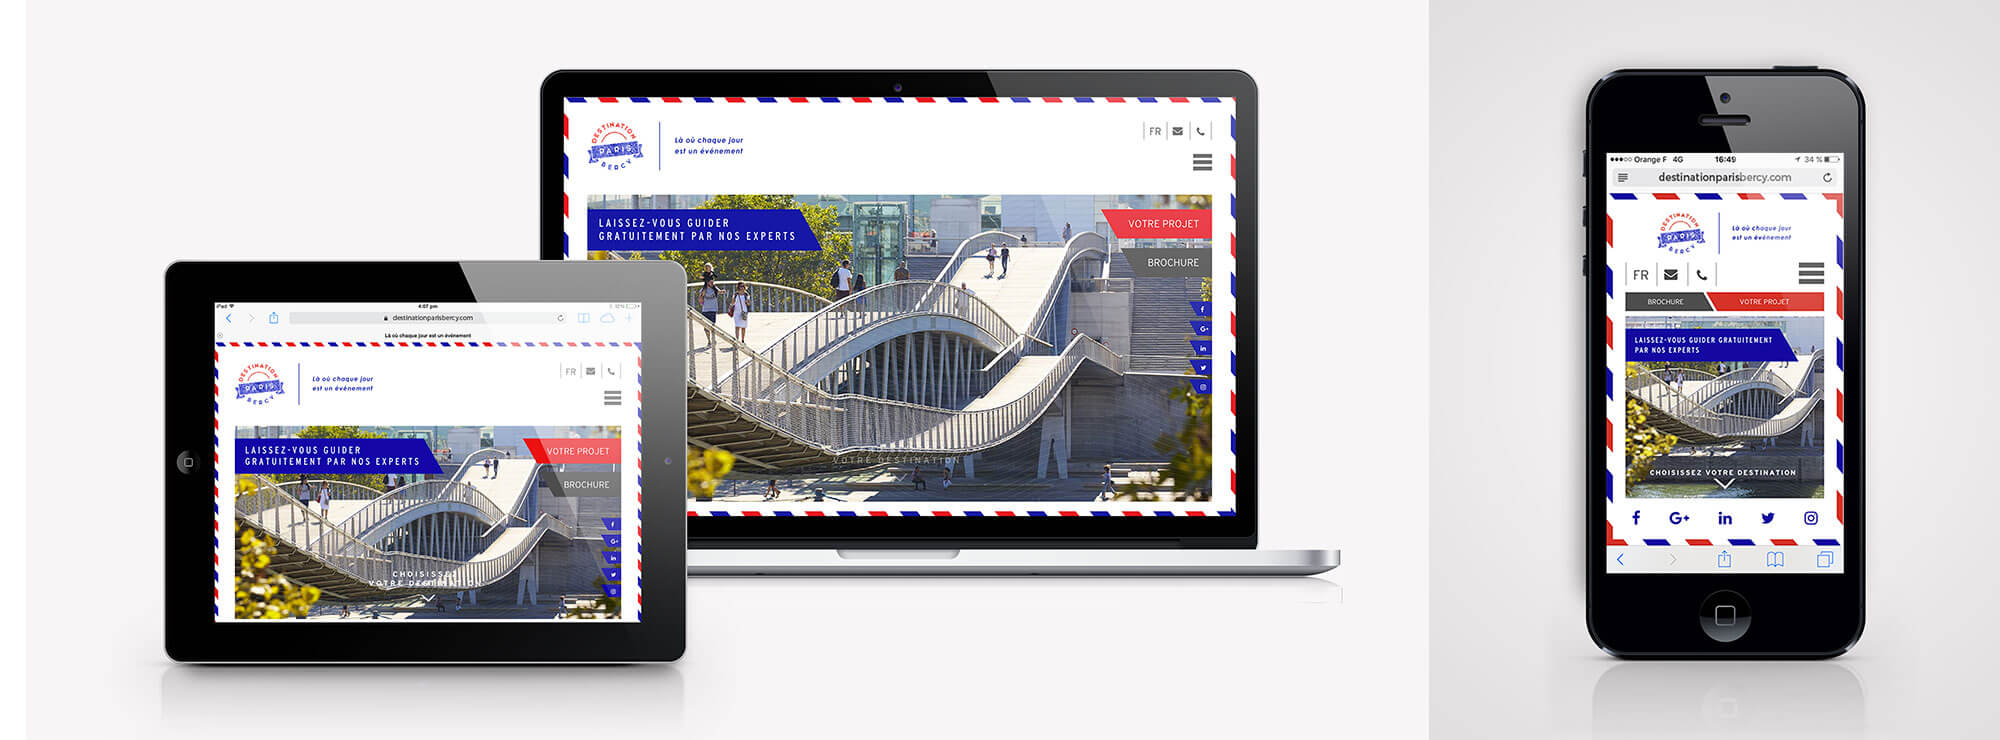 06.destination paris bercy home page site carrousel responsive.jpg